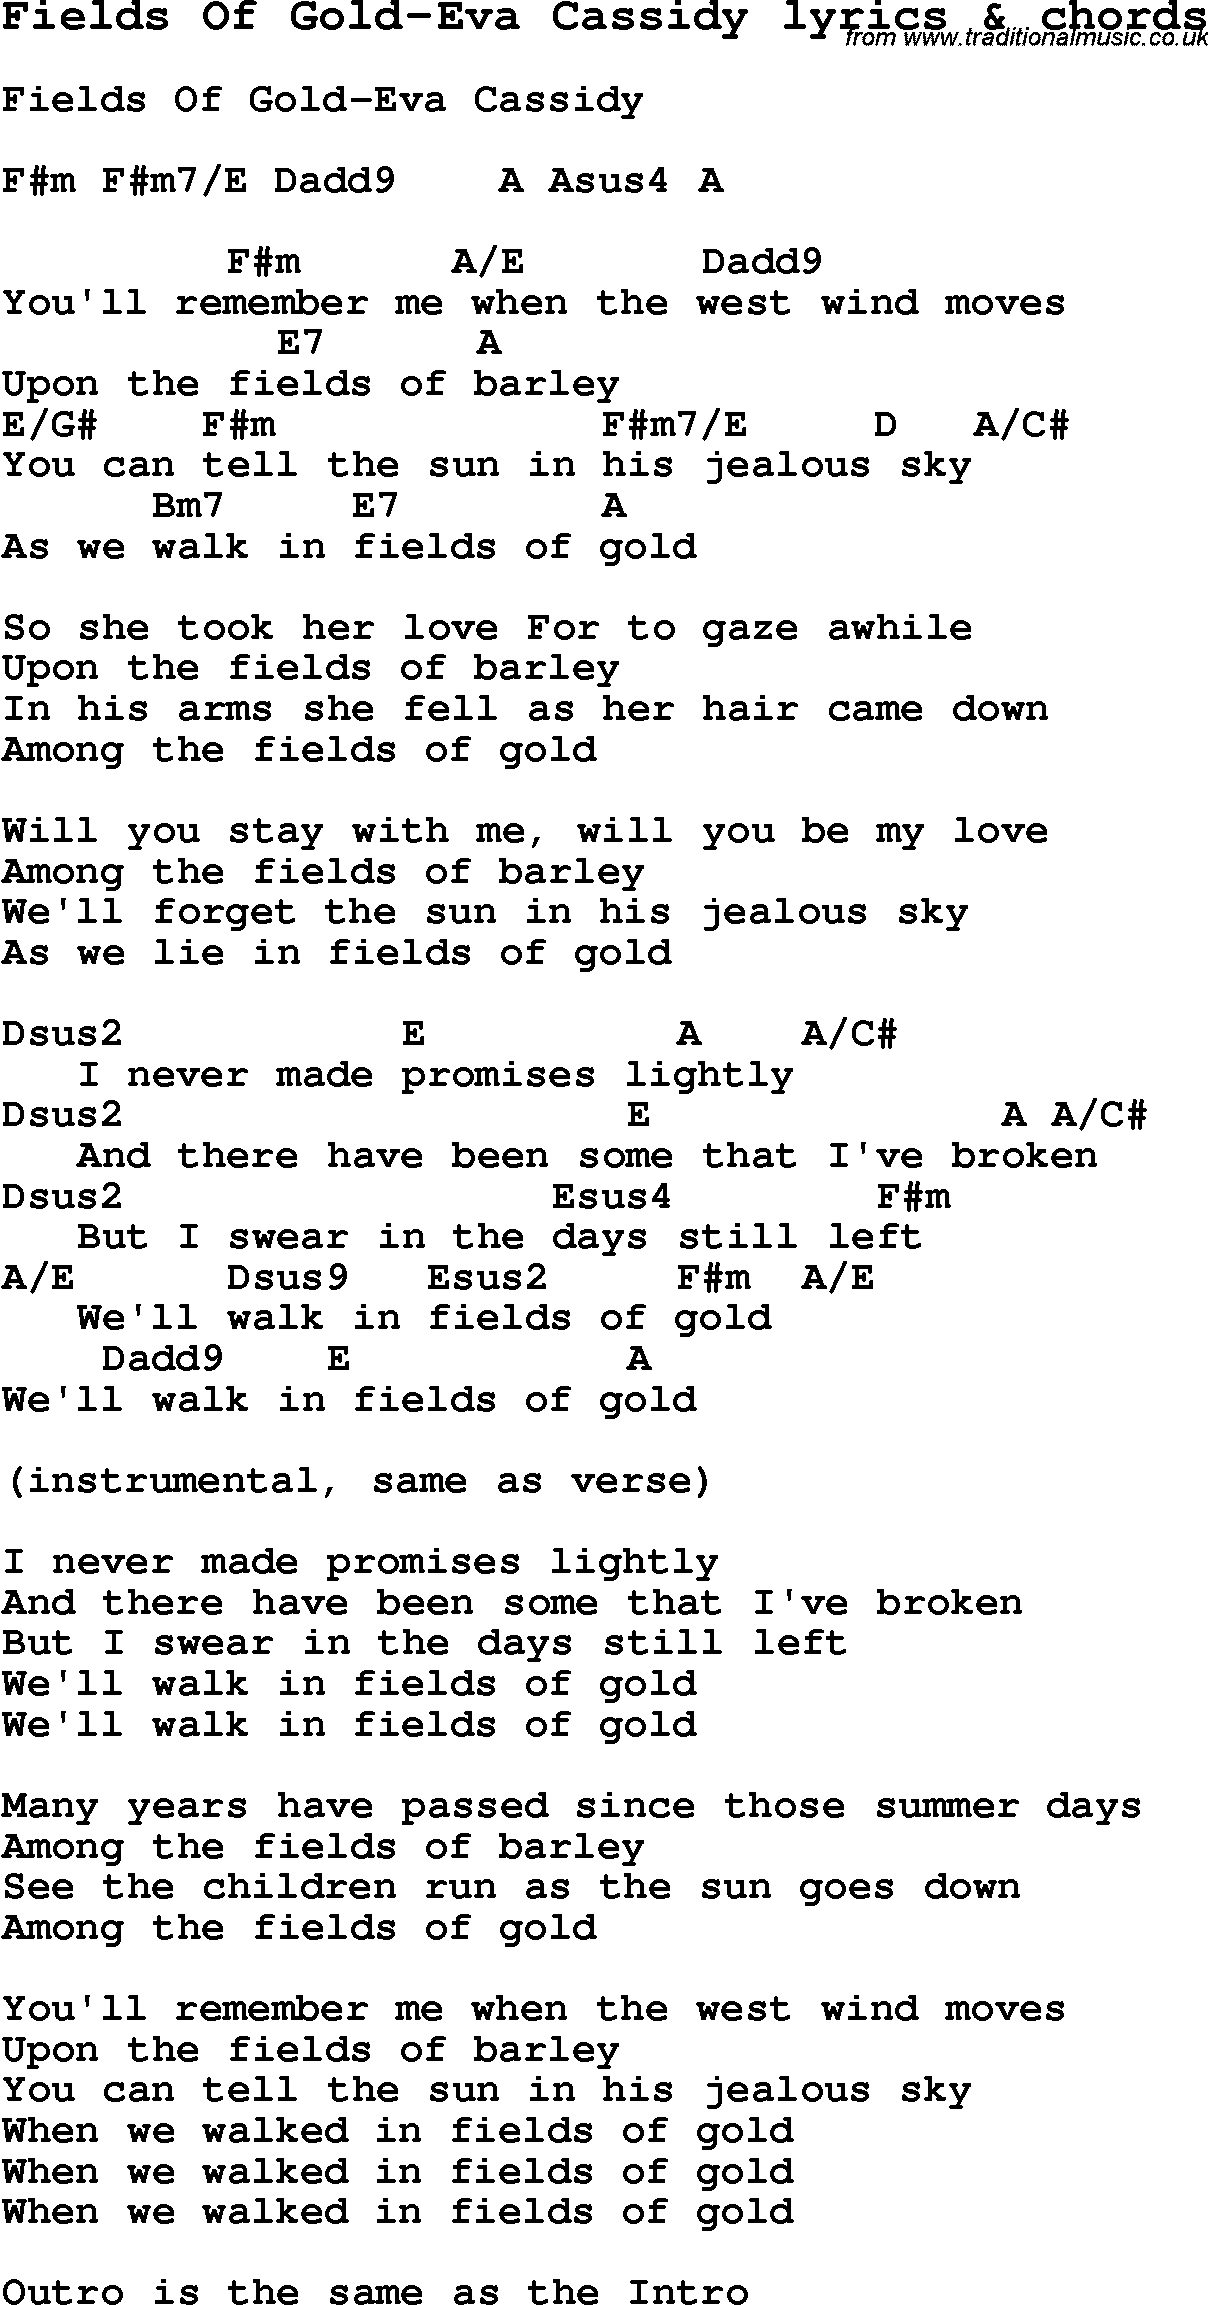 Love Song Lyrics For Fields Of Gold Eva Cassidy With Chords For